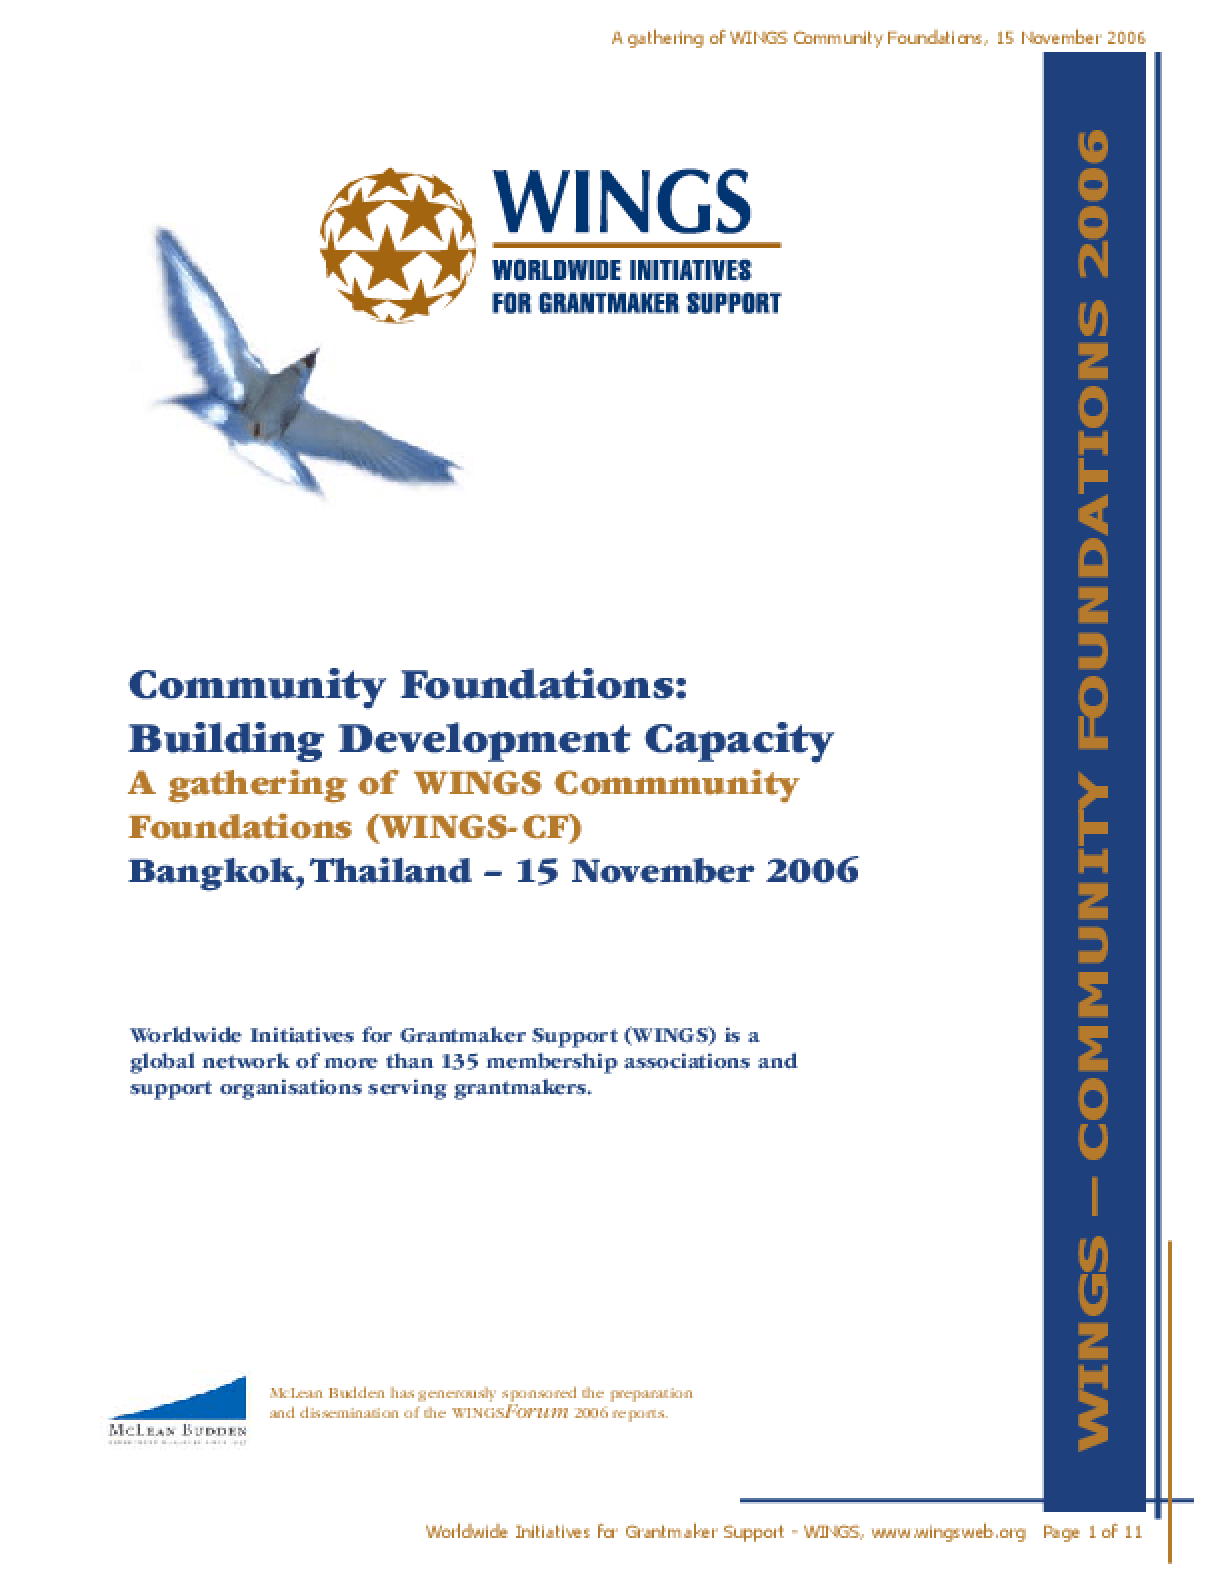 Community Foundations: Building Development Capacity, A Gathering of WINGS Community Foundations (WINGS-CF)